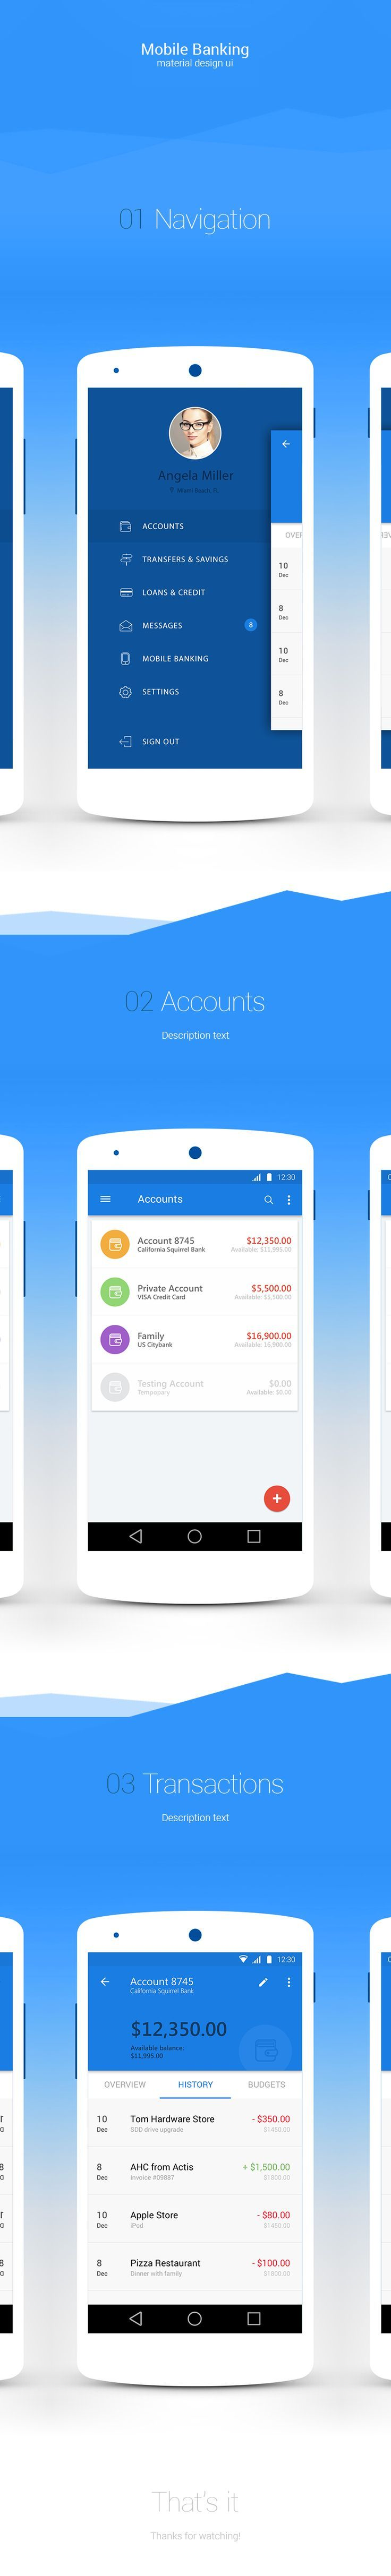 Mobile banking app UI. If you like UX, design, or design thinking, check out theuxblog.com